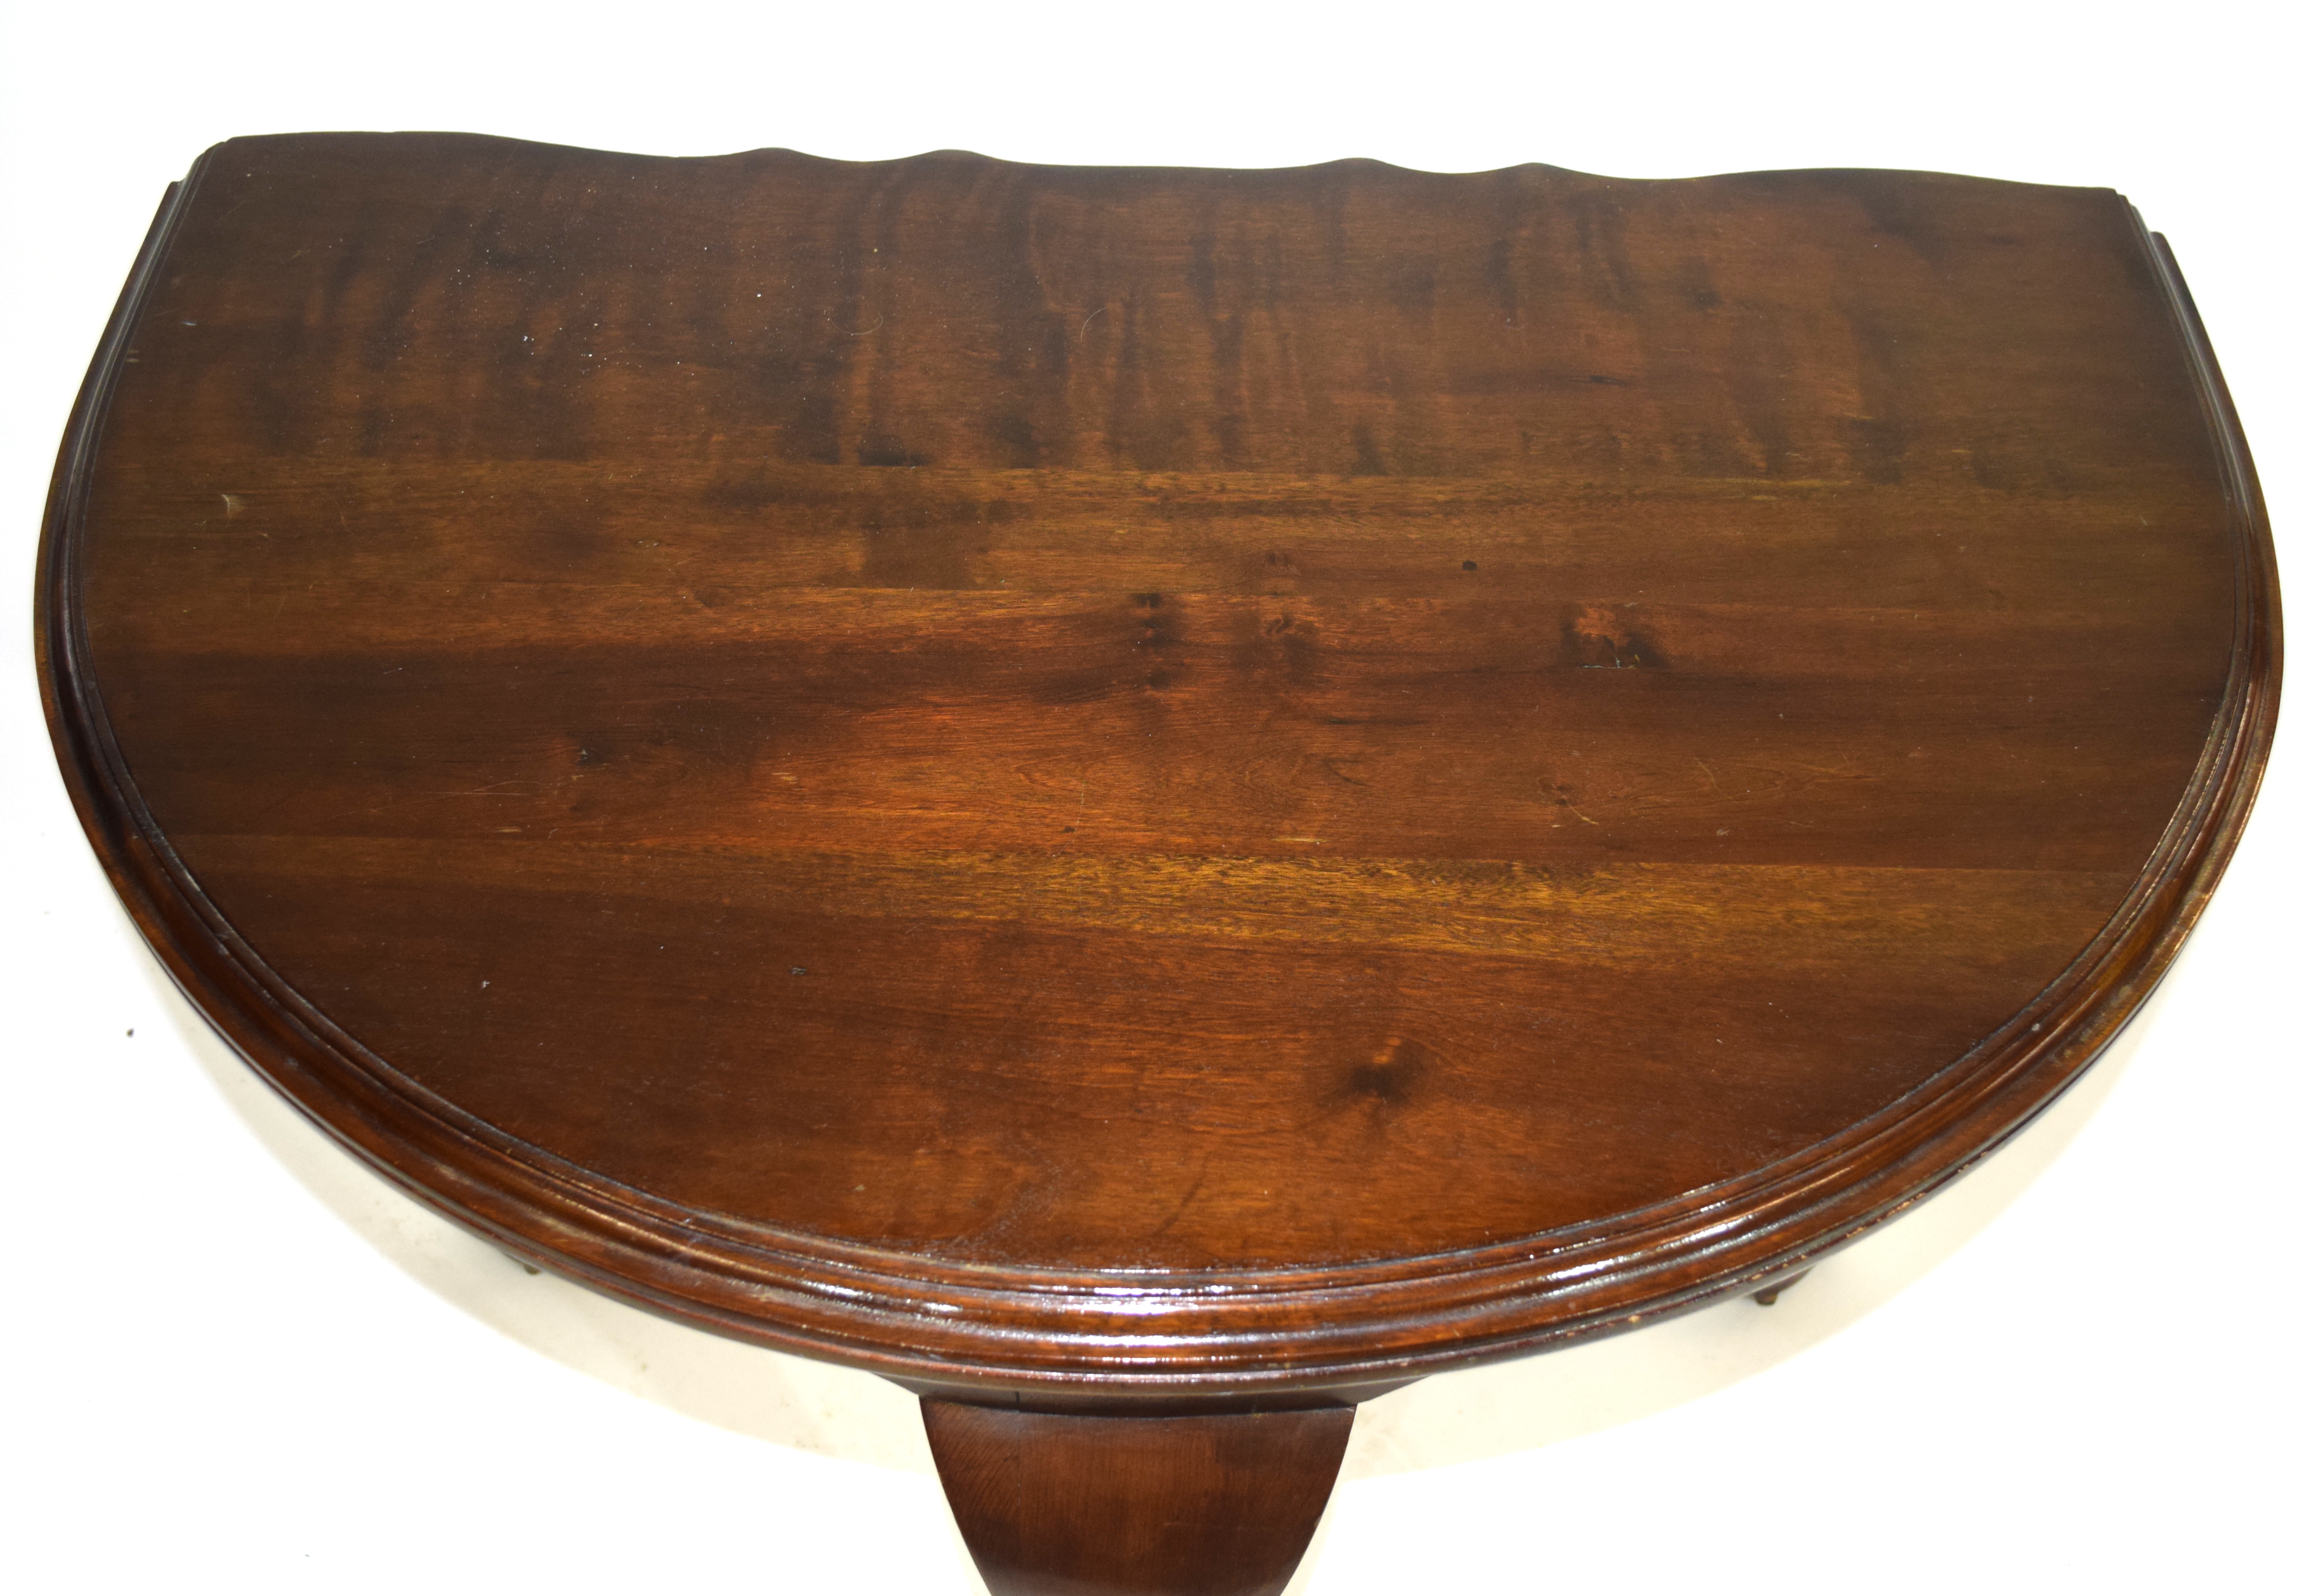 Edwardian mahogany demi-lune side table raised on three cabriole legs with ball and claw feet - Image 3 of 7